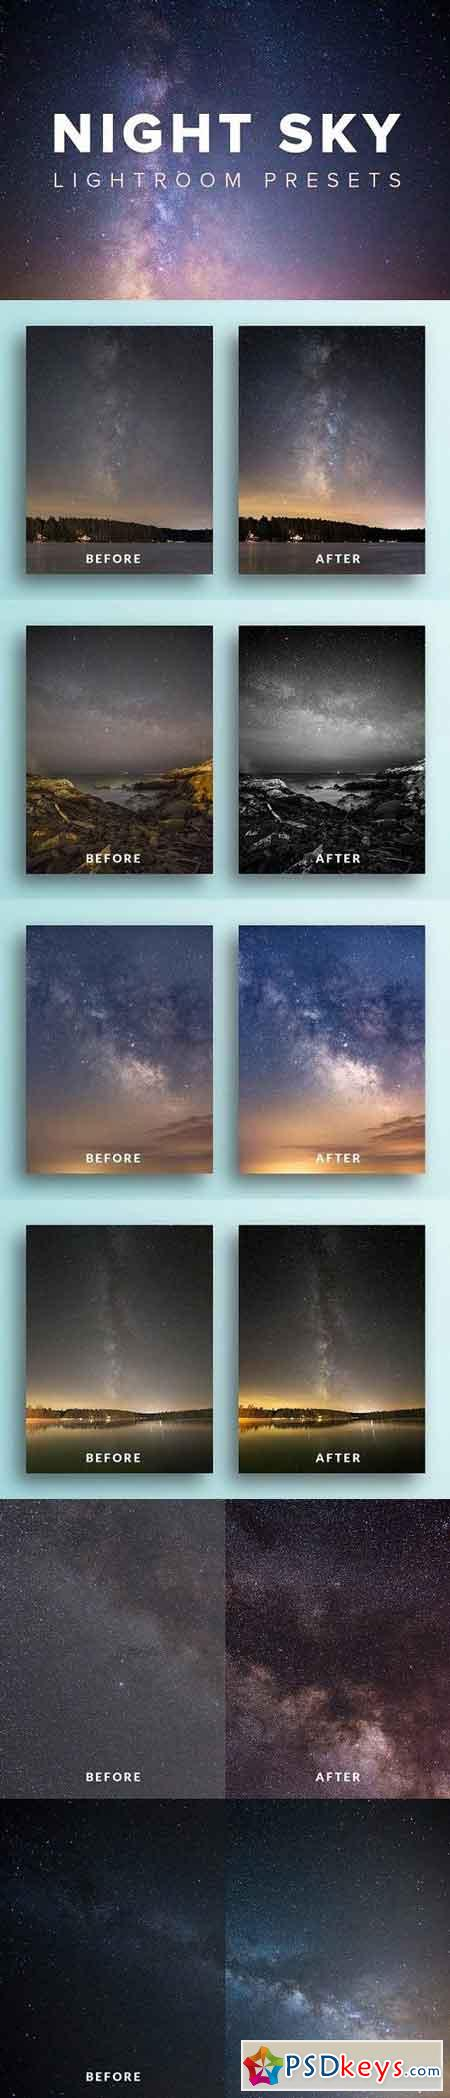 Night Sky Lightroom Presets 1196311